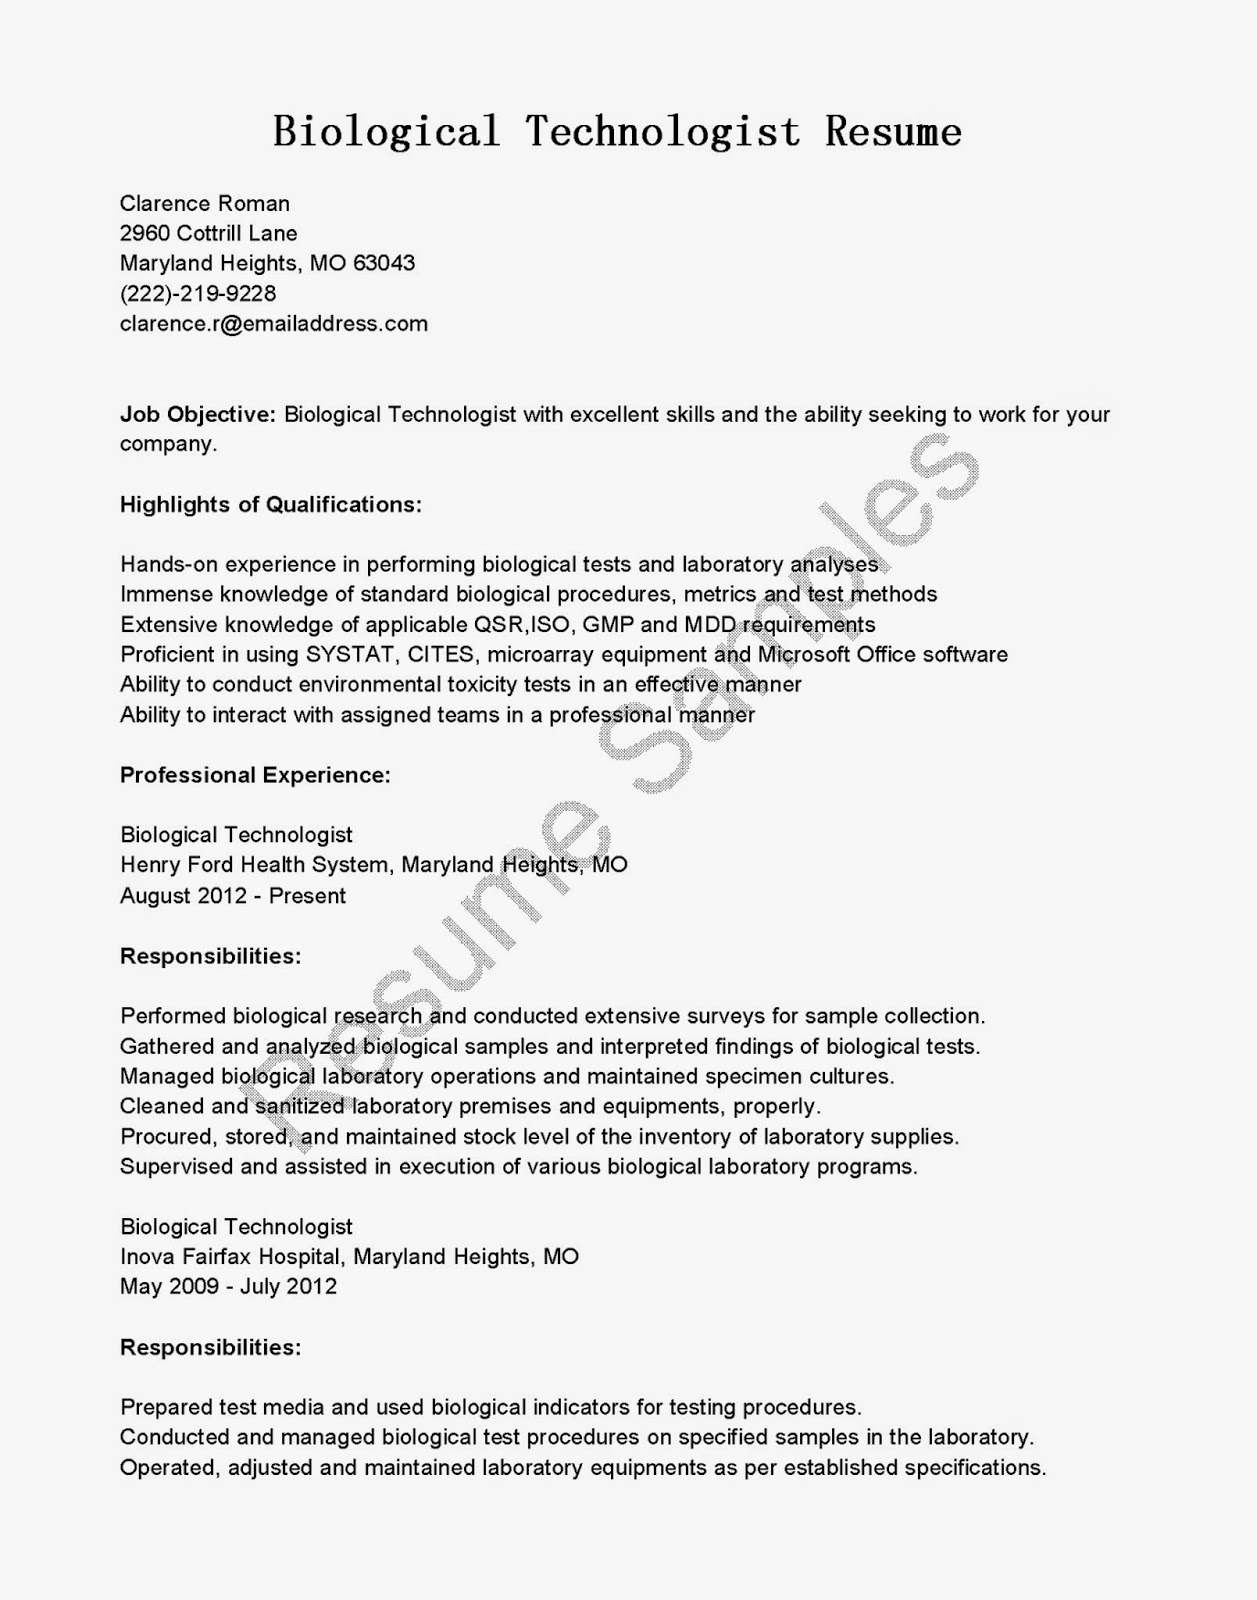 Best essay writing service anema e gusto sample cover letter for sample cover letter for food service aide letter of application for work experience in a hospital allfinance zone madrichimfo Choice Image